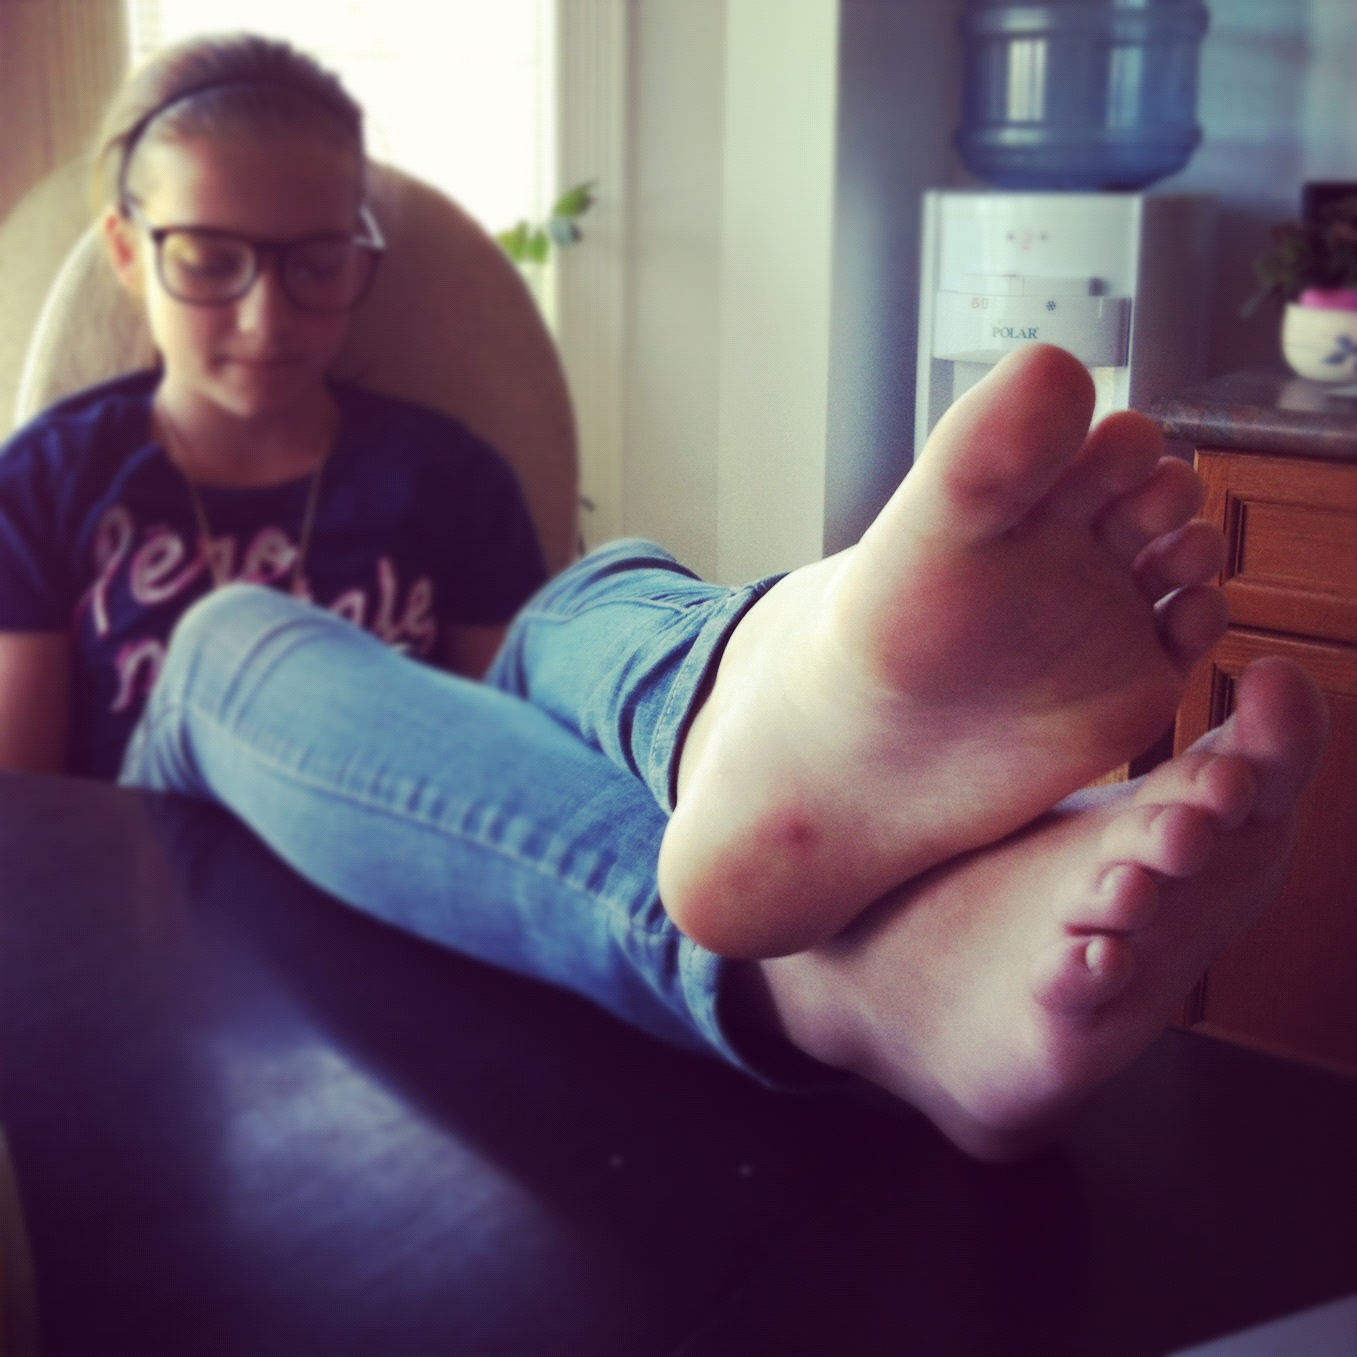 Teen feet photos